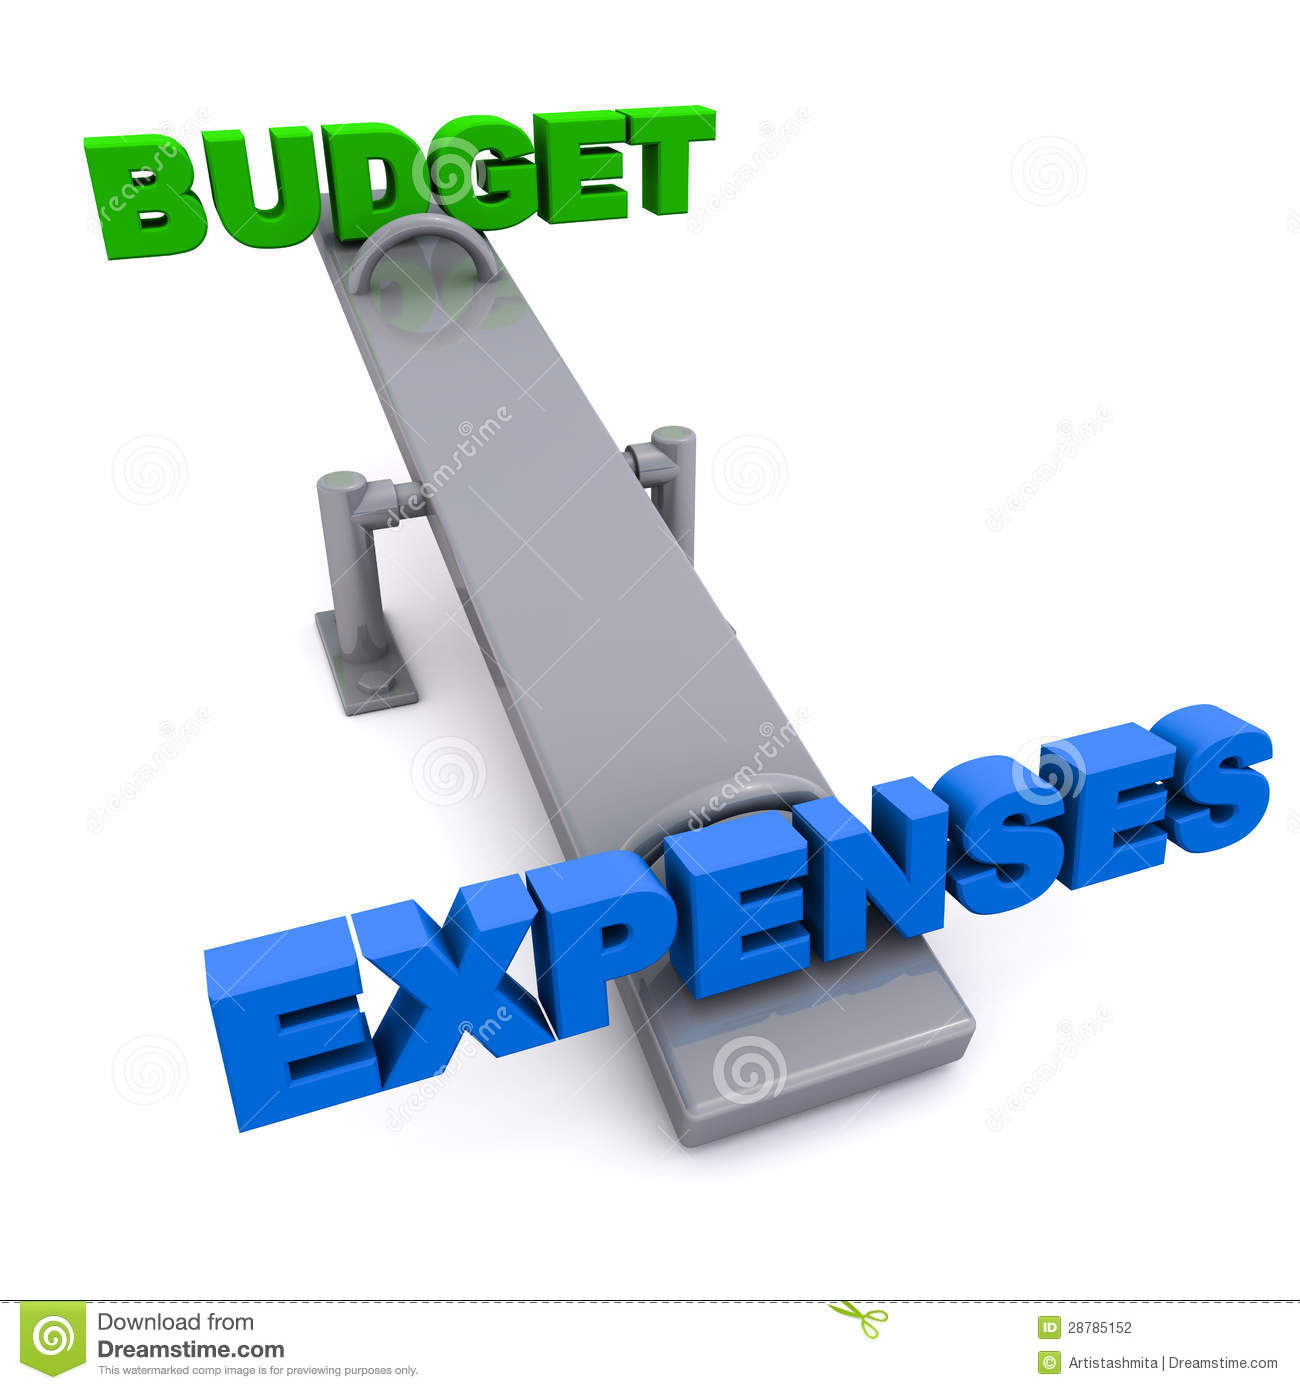 Concept Of Over The Budget Expenses And Exceeding The Budget